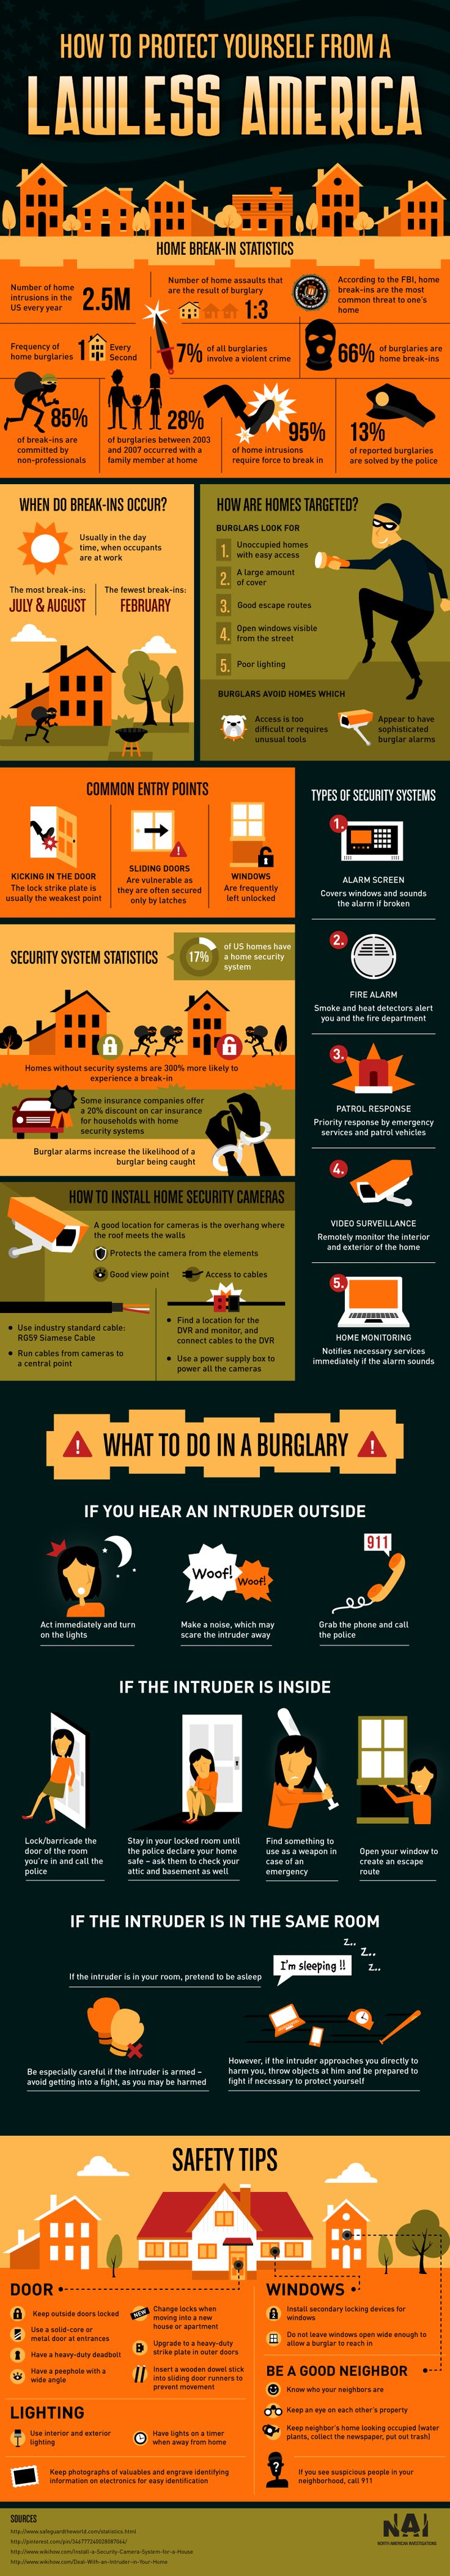 Home burglaries are all too prevalent in the United States. Having the security of one's home violated and personal possessions stolen is something everyone would like to avoid. While there is no foolproof way to completely prevent burglaries, there are steps that you can take to protect your home from break-ins.